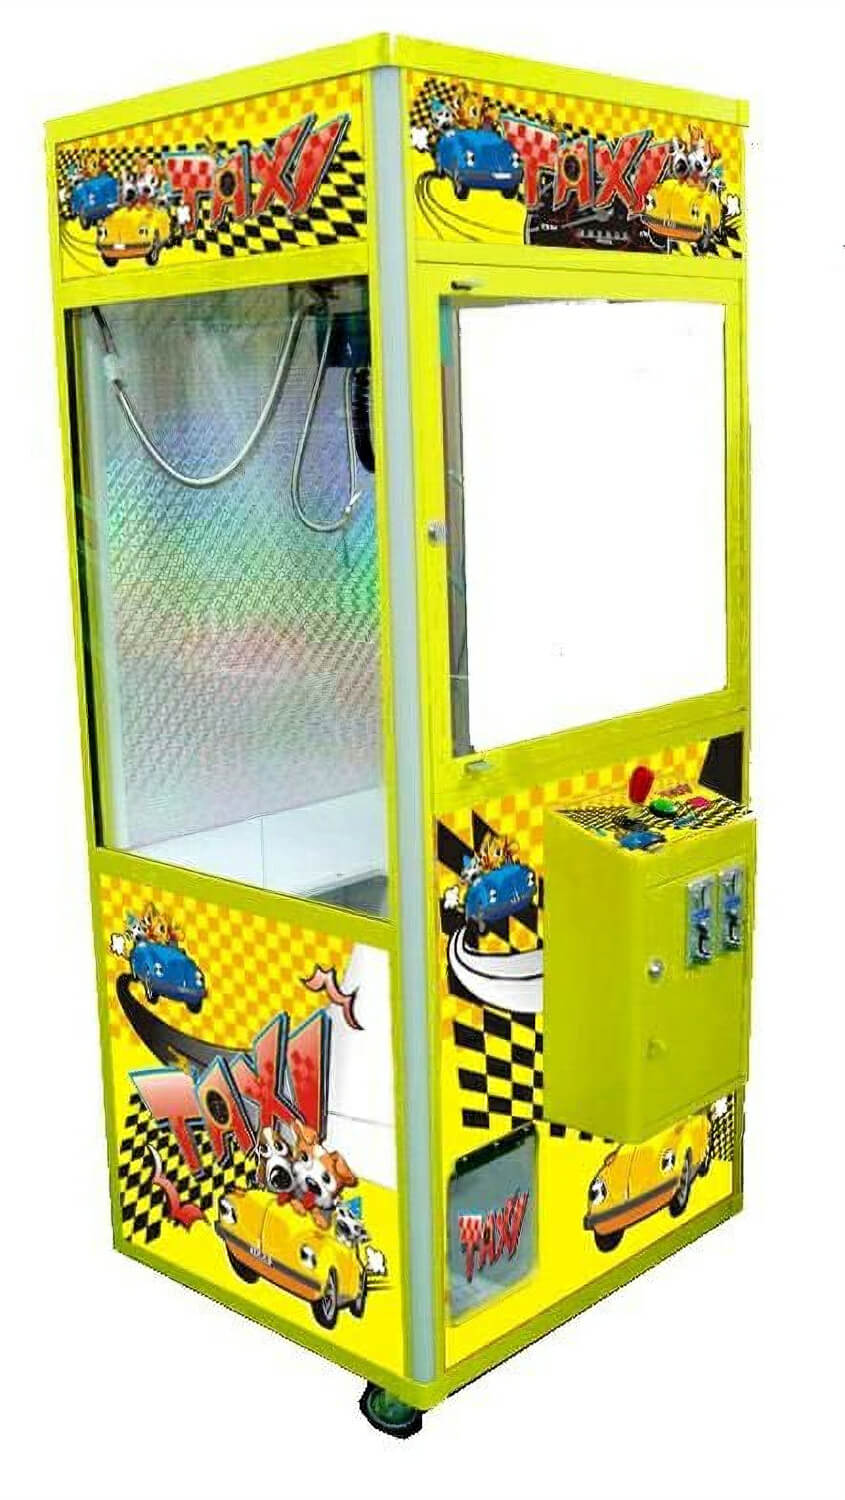 Taxi Crane Machine Liberty Games